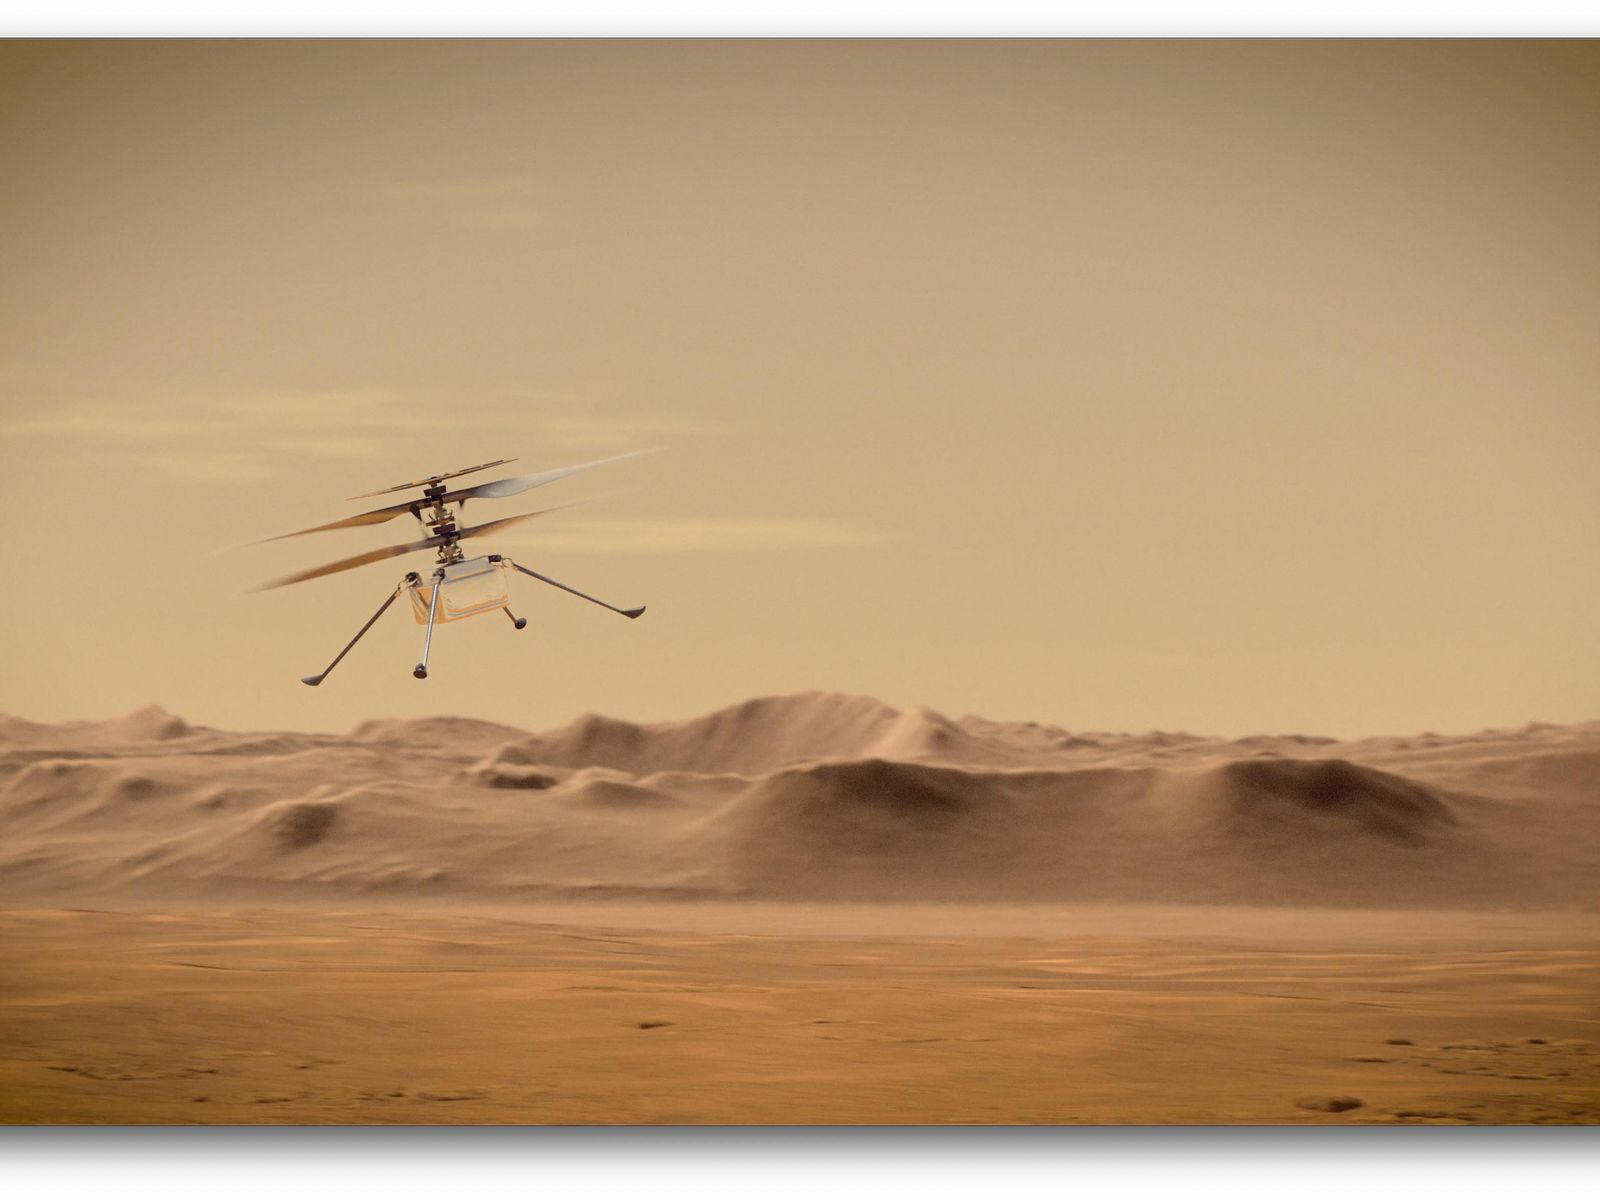 Space Images | Ingenuity Mars Helicopter in Flight (Artist ...